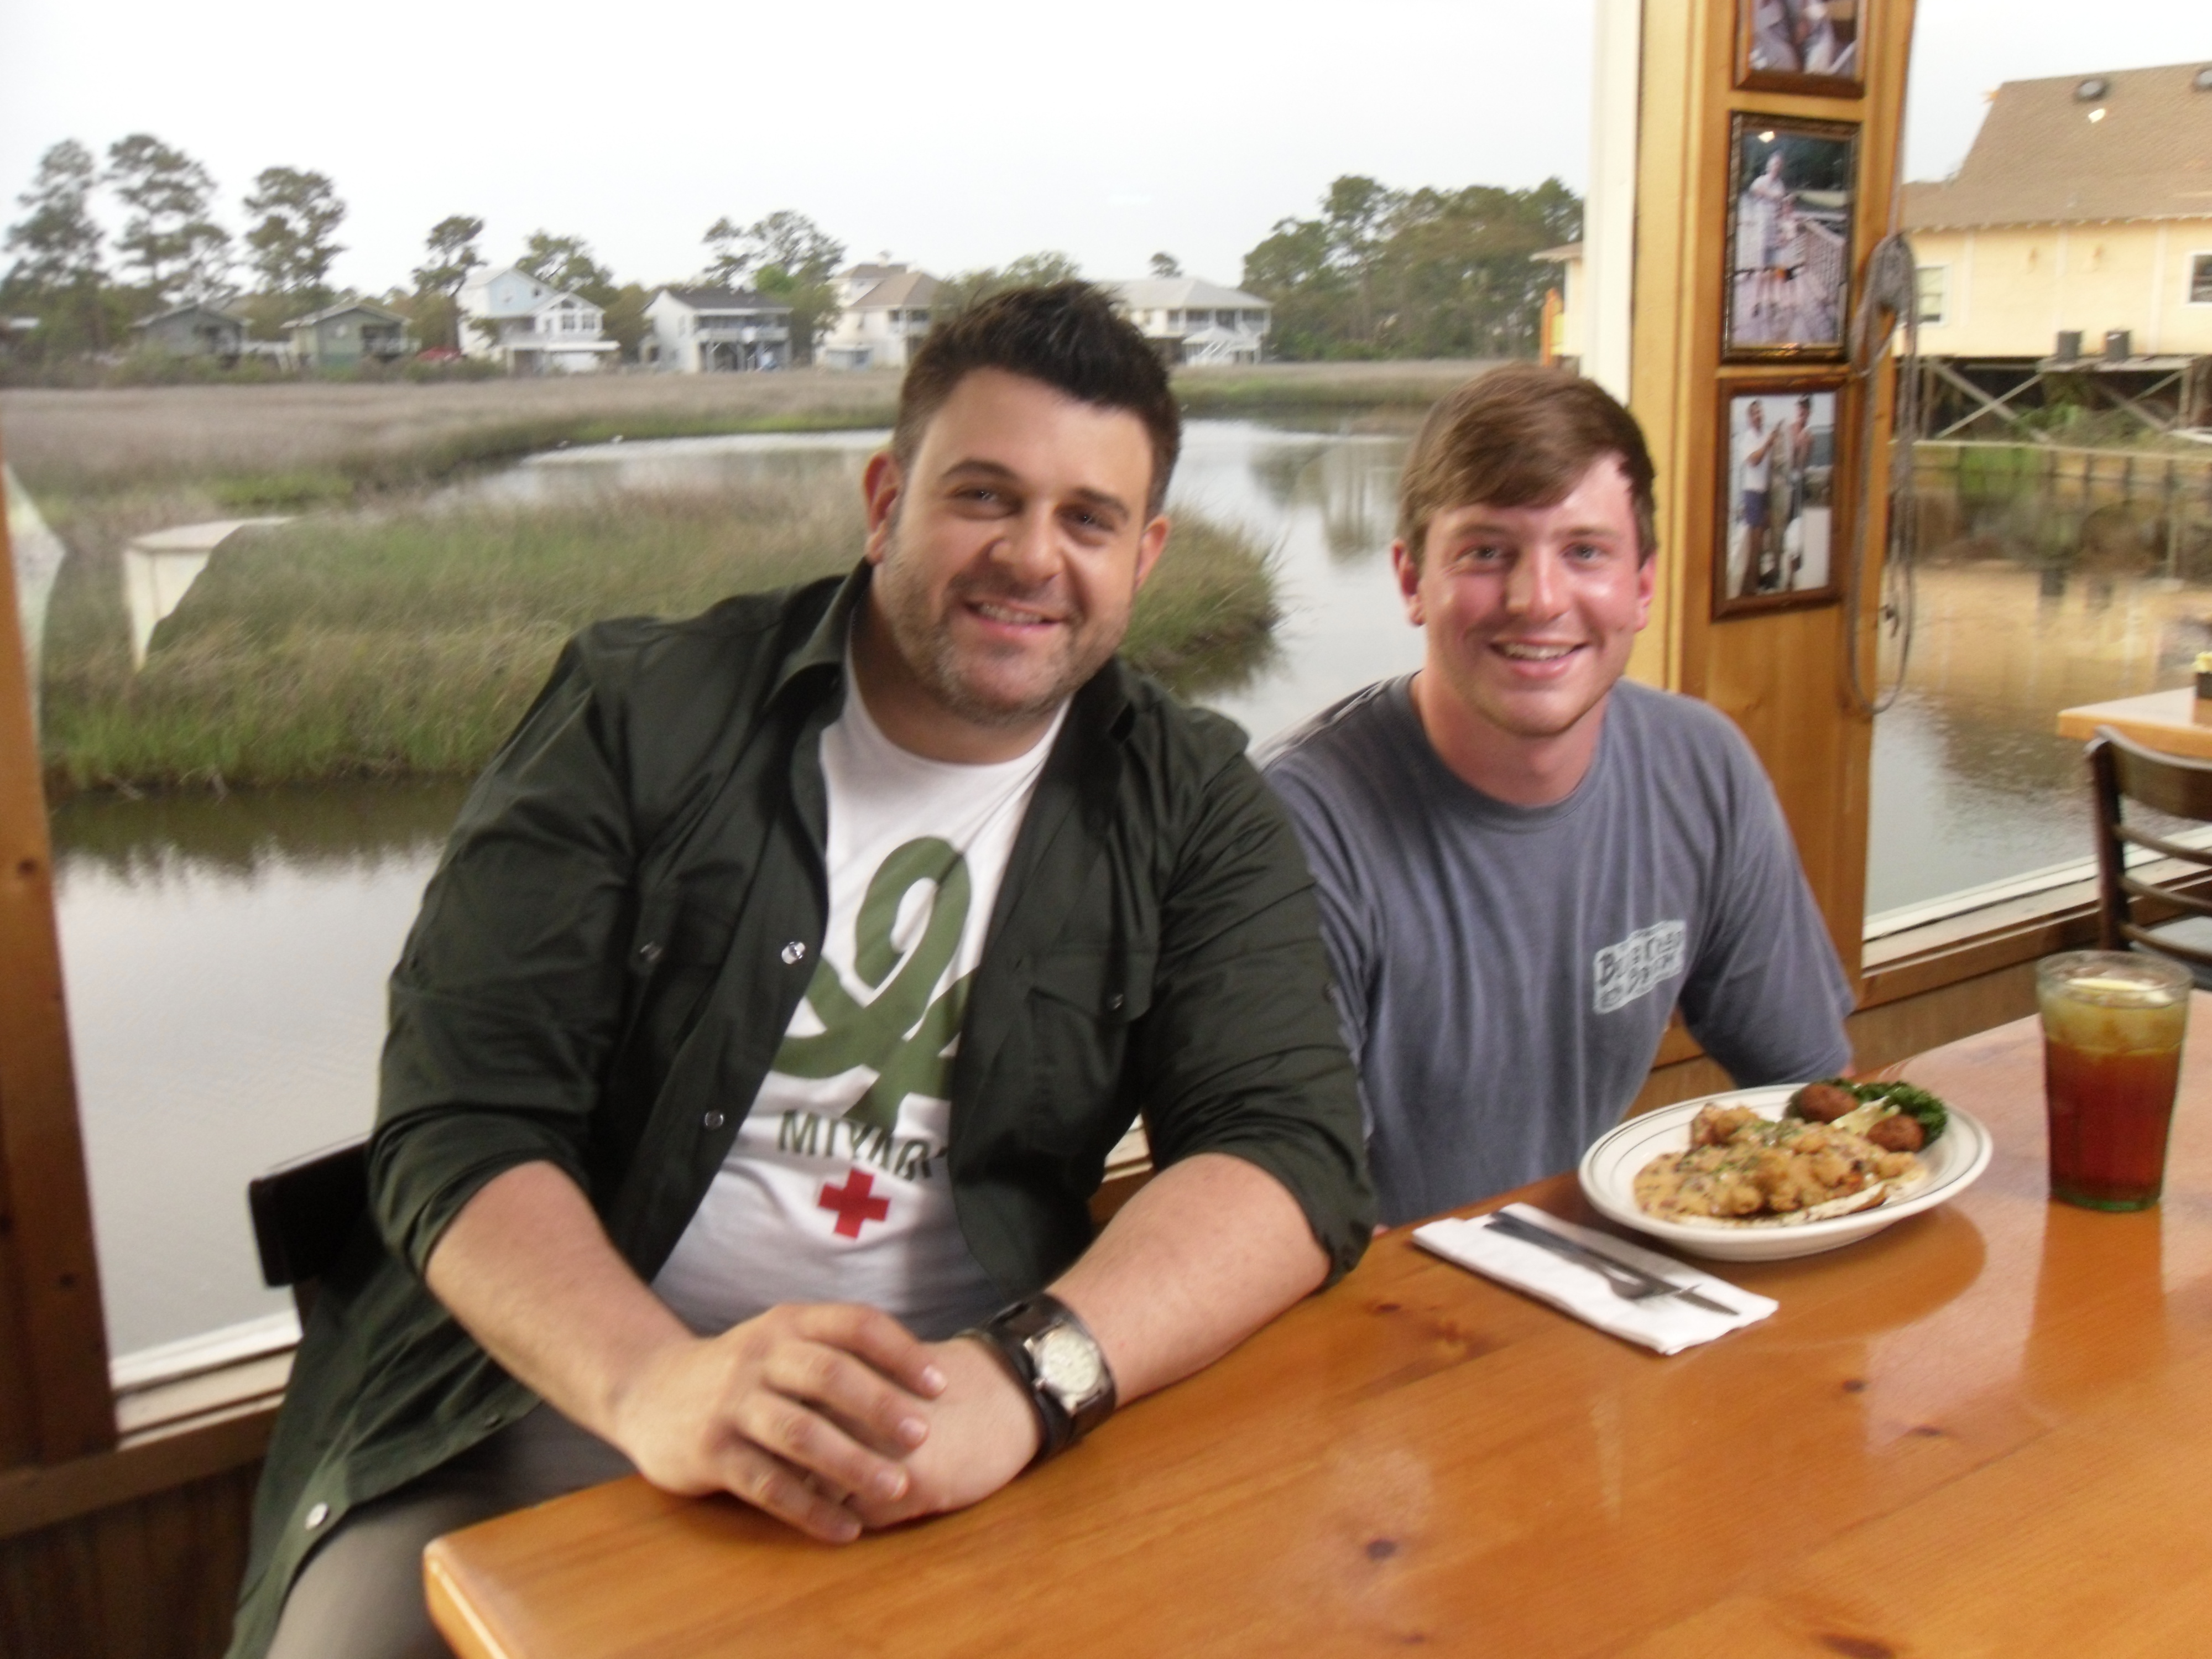 Adam Richman from Man vs. Food, American food reality television series, joins Josh Roszkowski, son of the founder Joe, at the Gulf Shores restaurant.